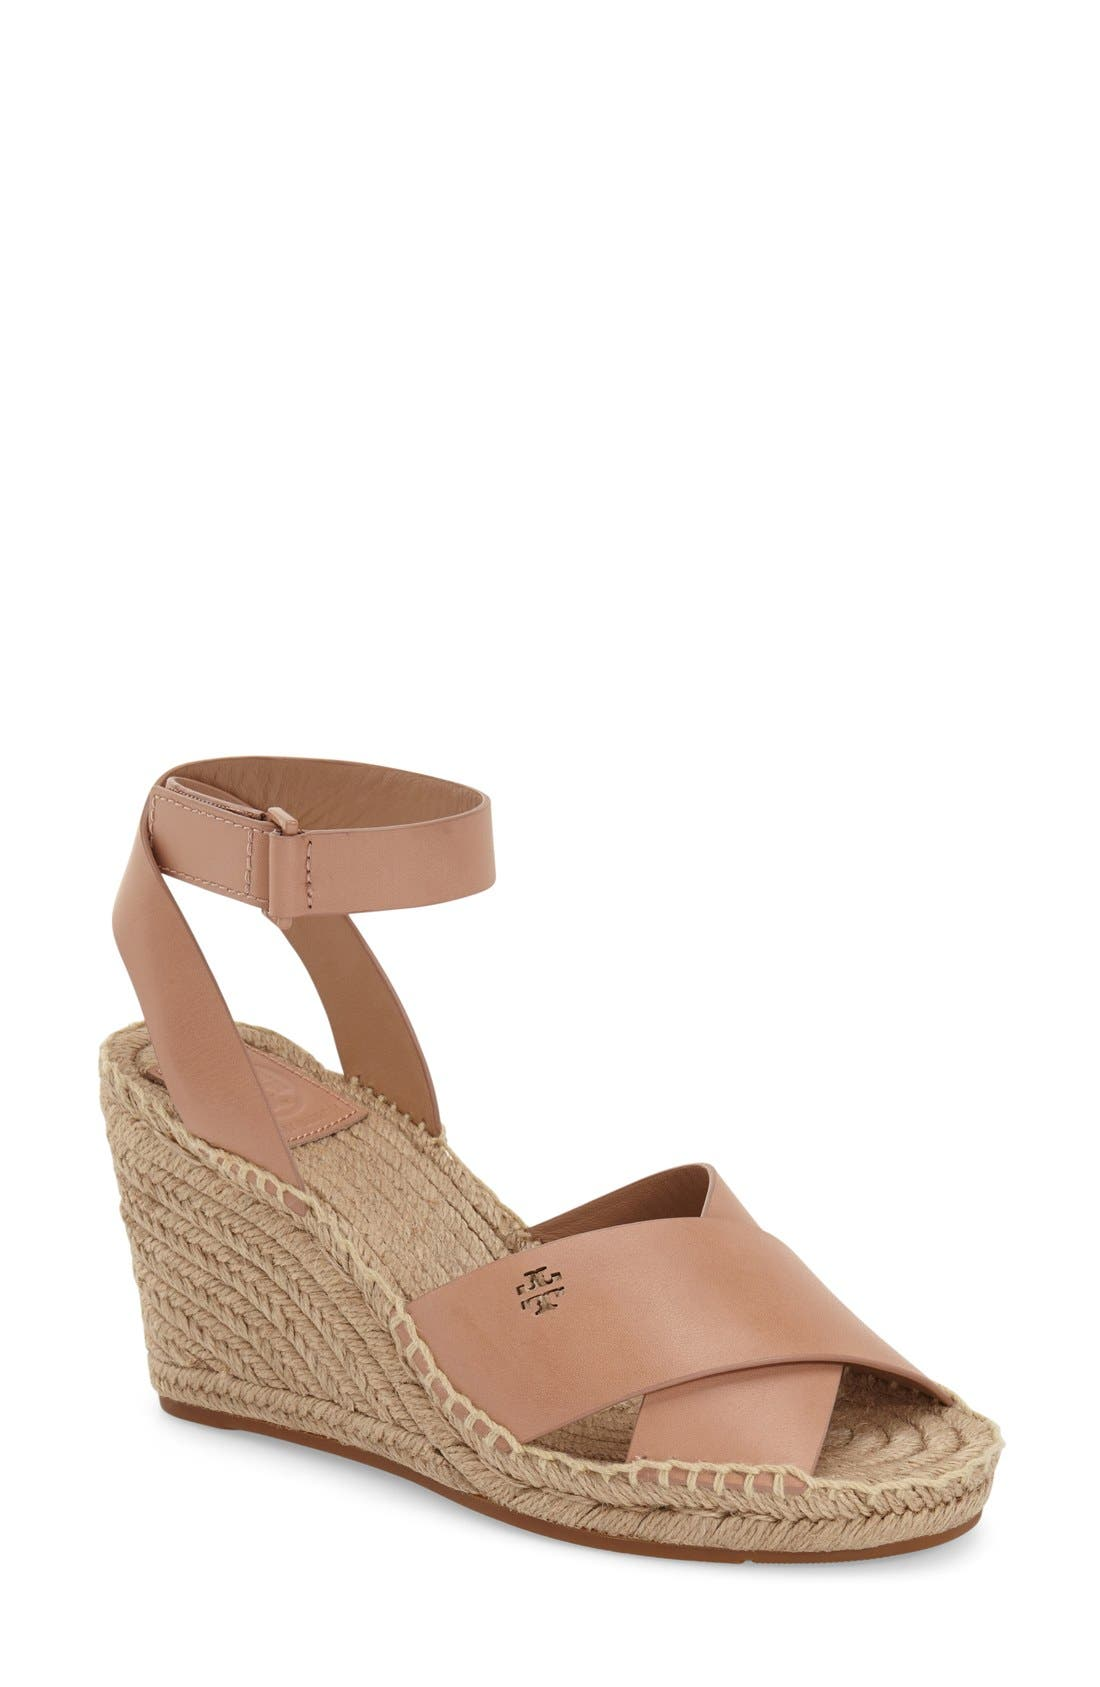 'Bima' Espadrille Wedge,                         Main,                         color, 256